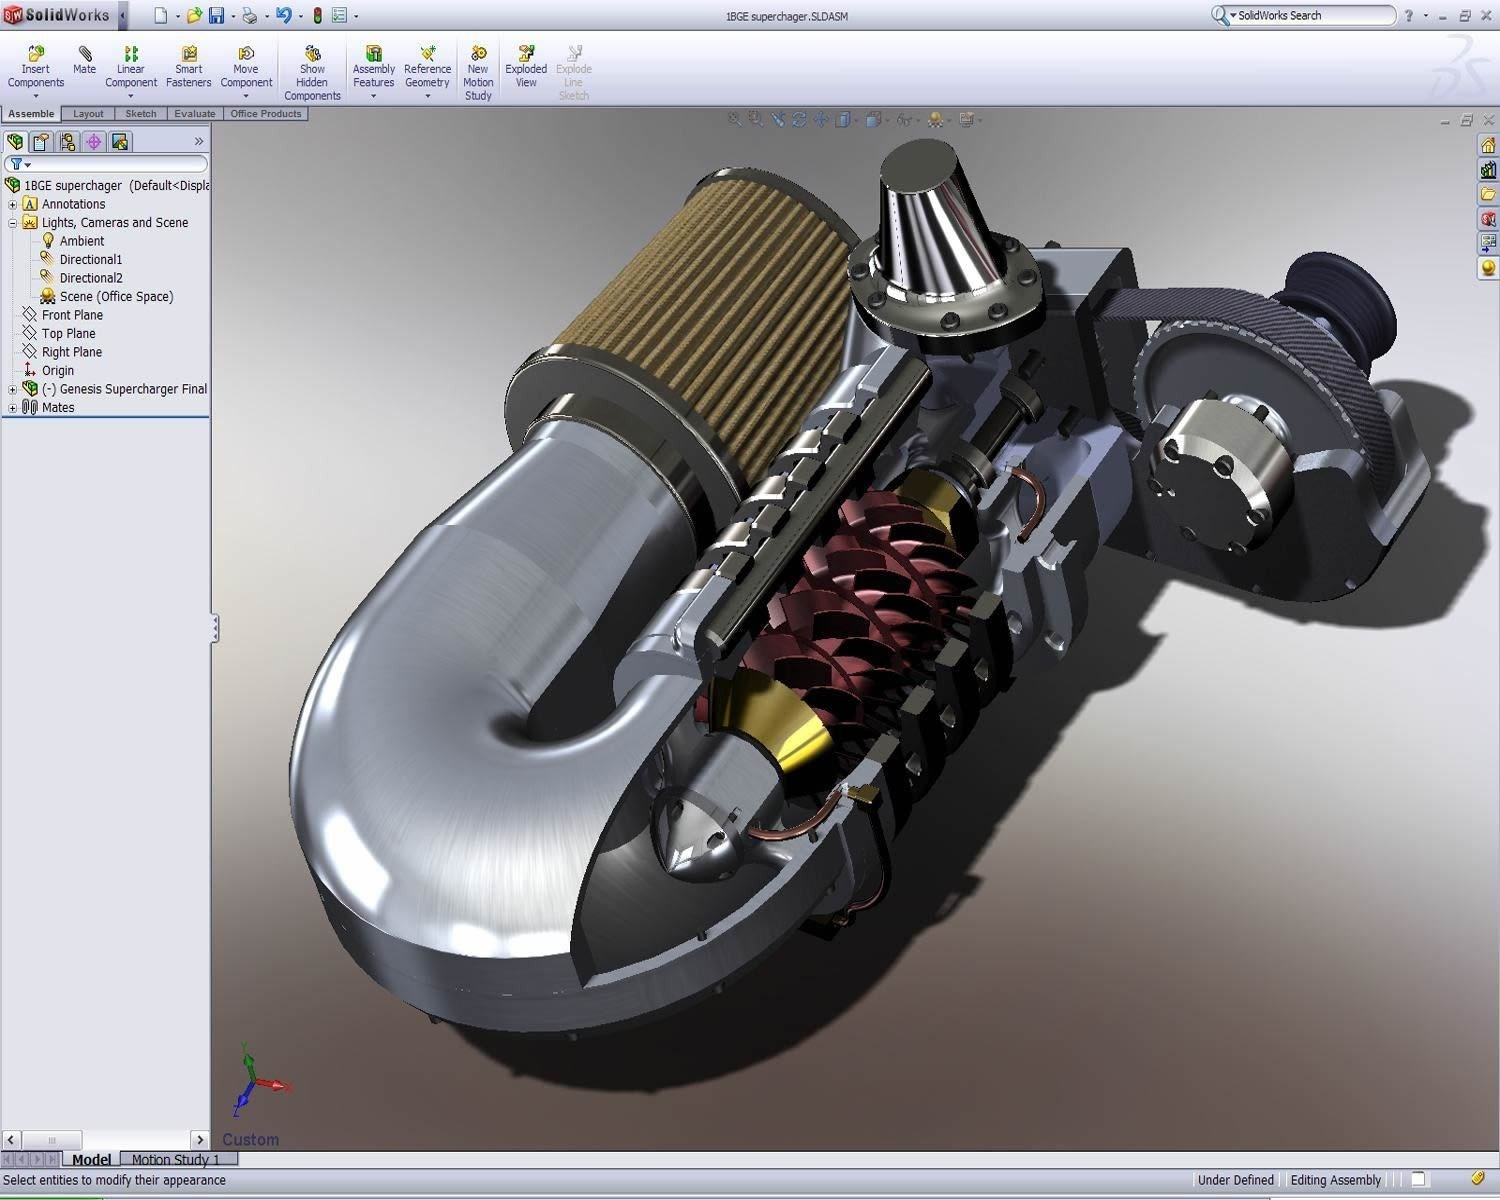 12 Apps Like SolidWorks